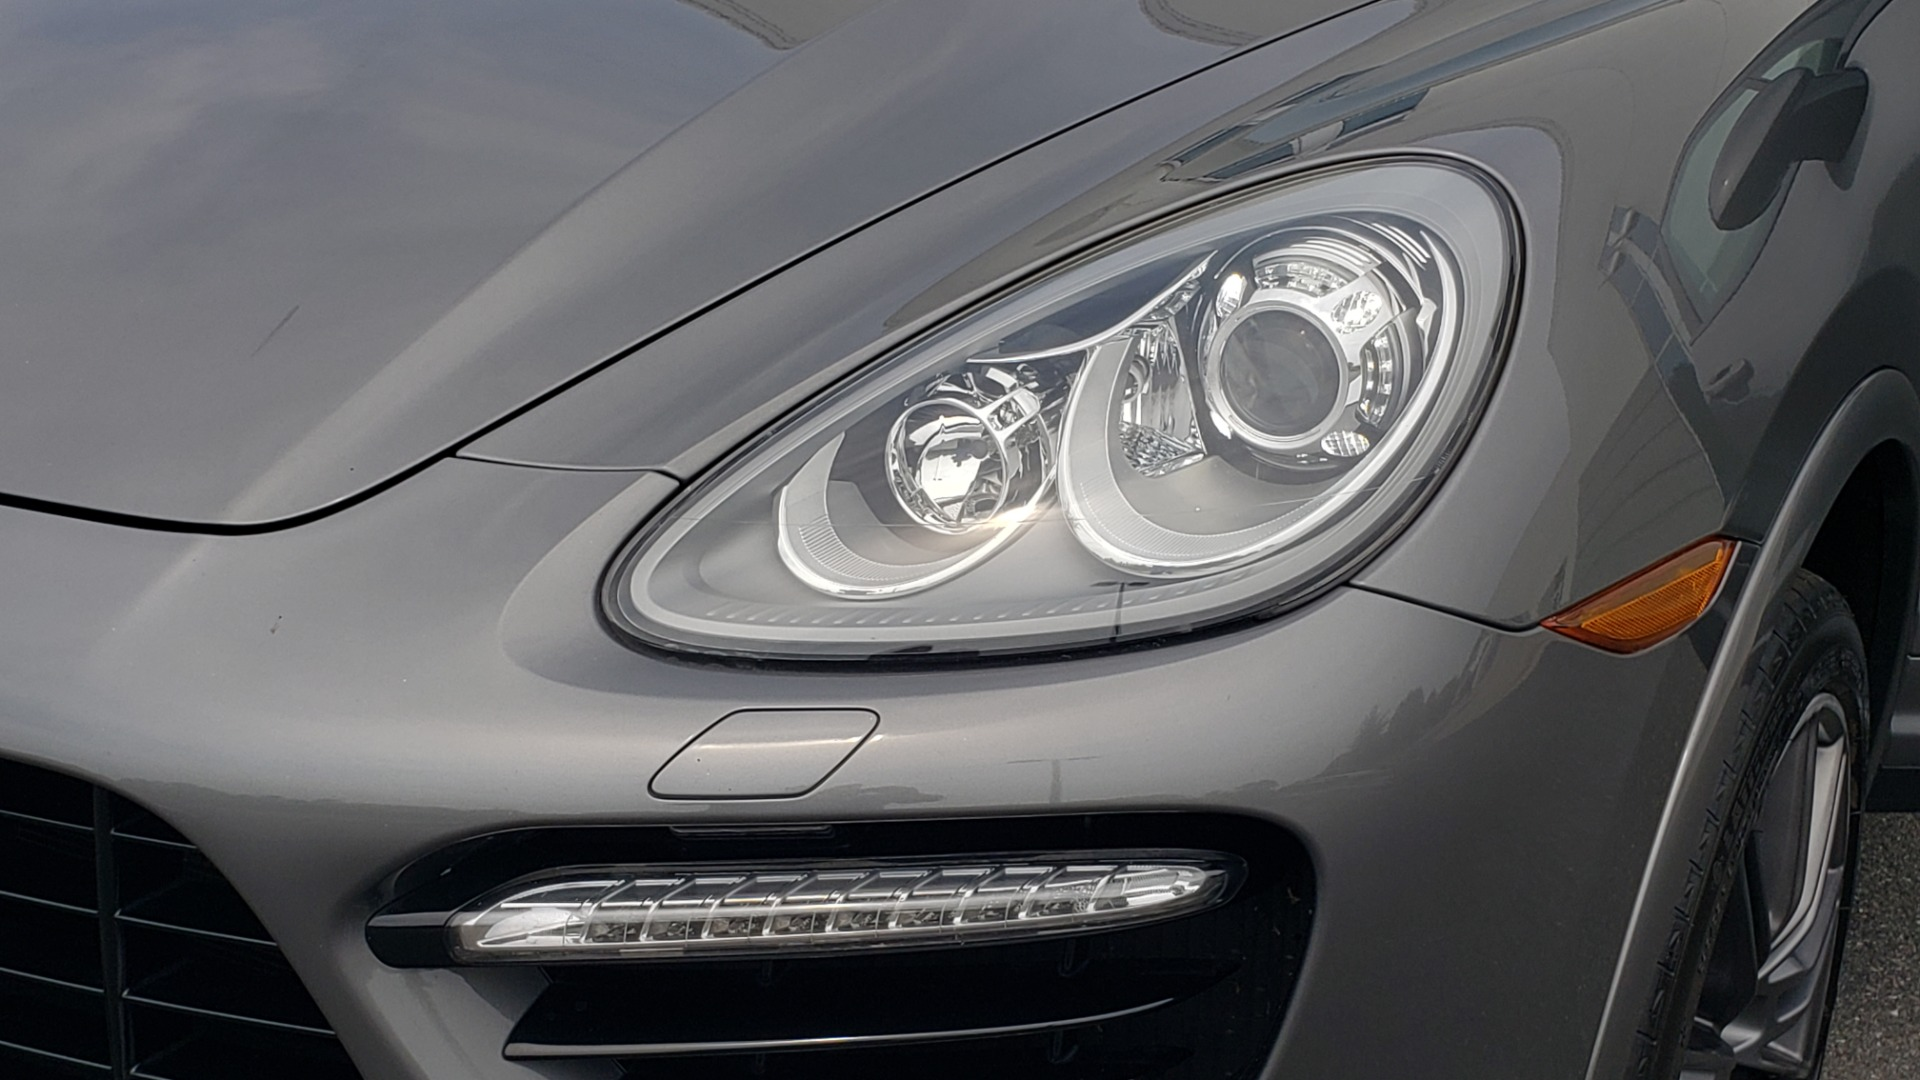 Used 2014 Porsche CAYENNE TURBO S / AWD / NAV / BOSE / PANO-ROOF / LCA / REARVIEW for sale Sold at Formula Imports in Charlotte NC 28227 27